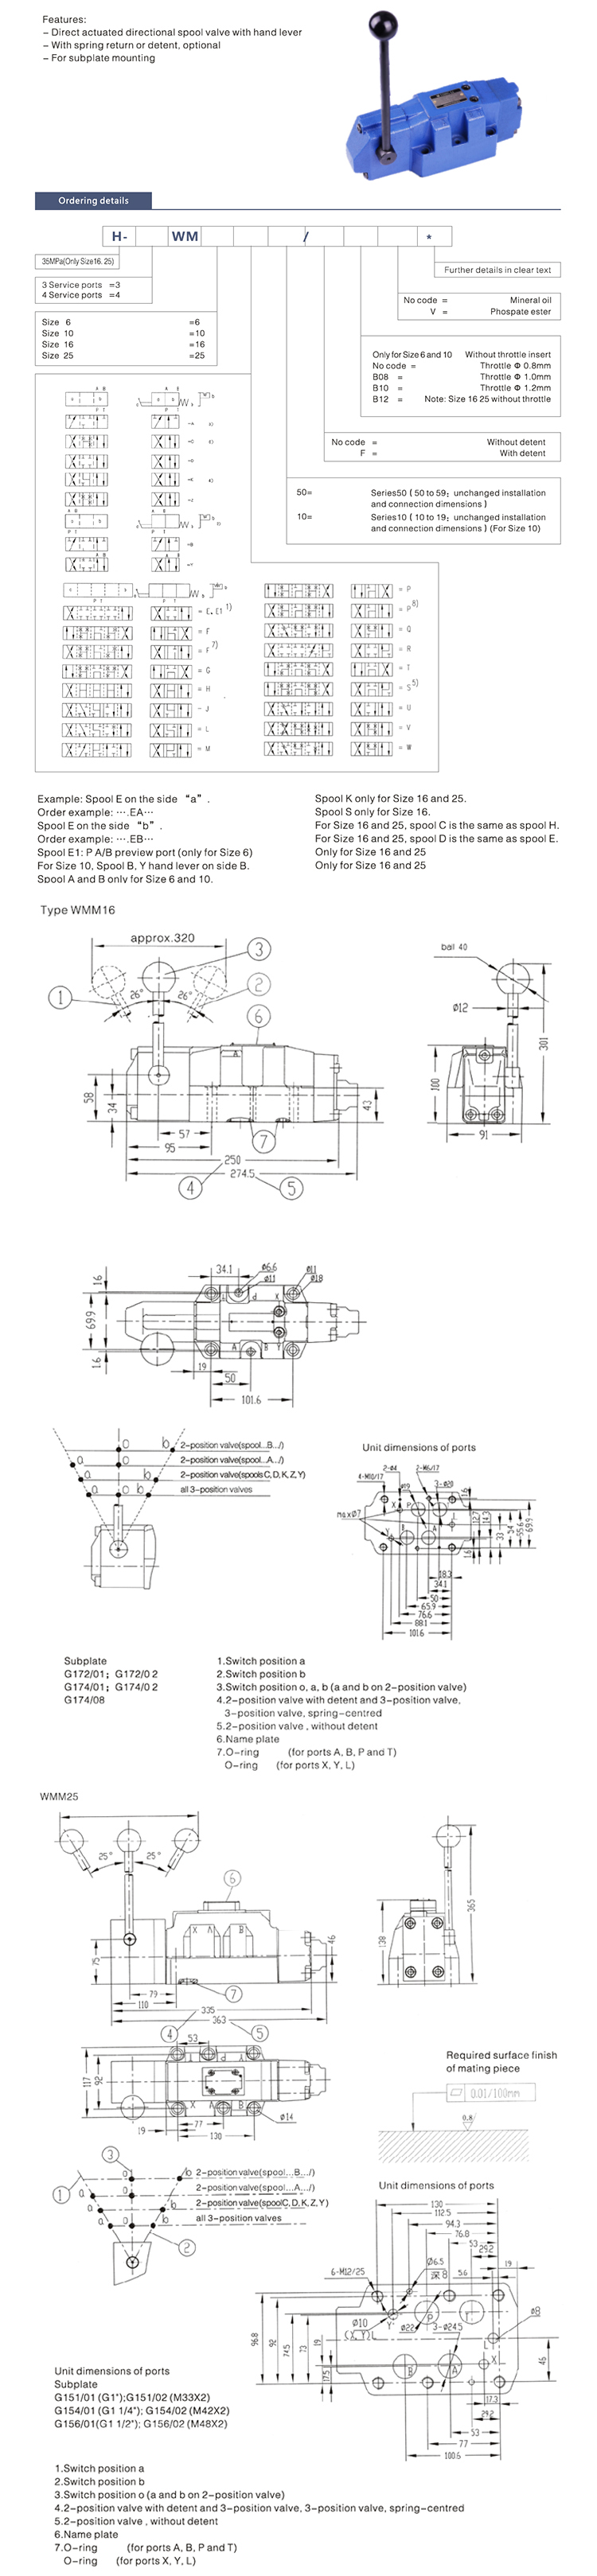 Hydraulic Manual Direct Flow Control Valve